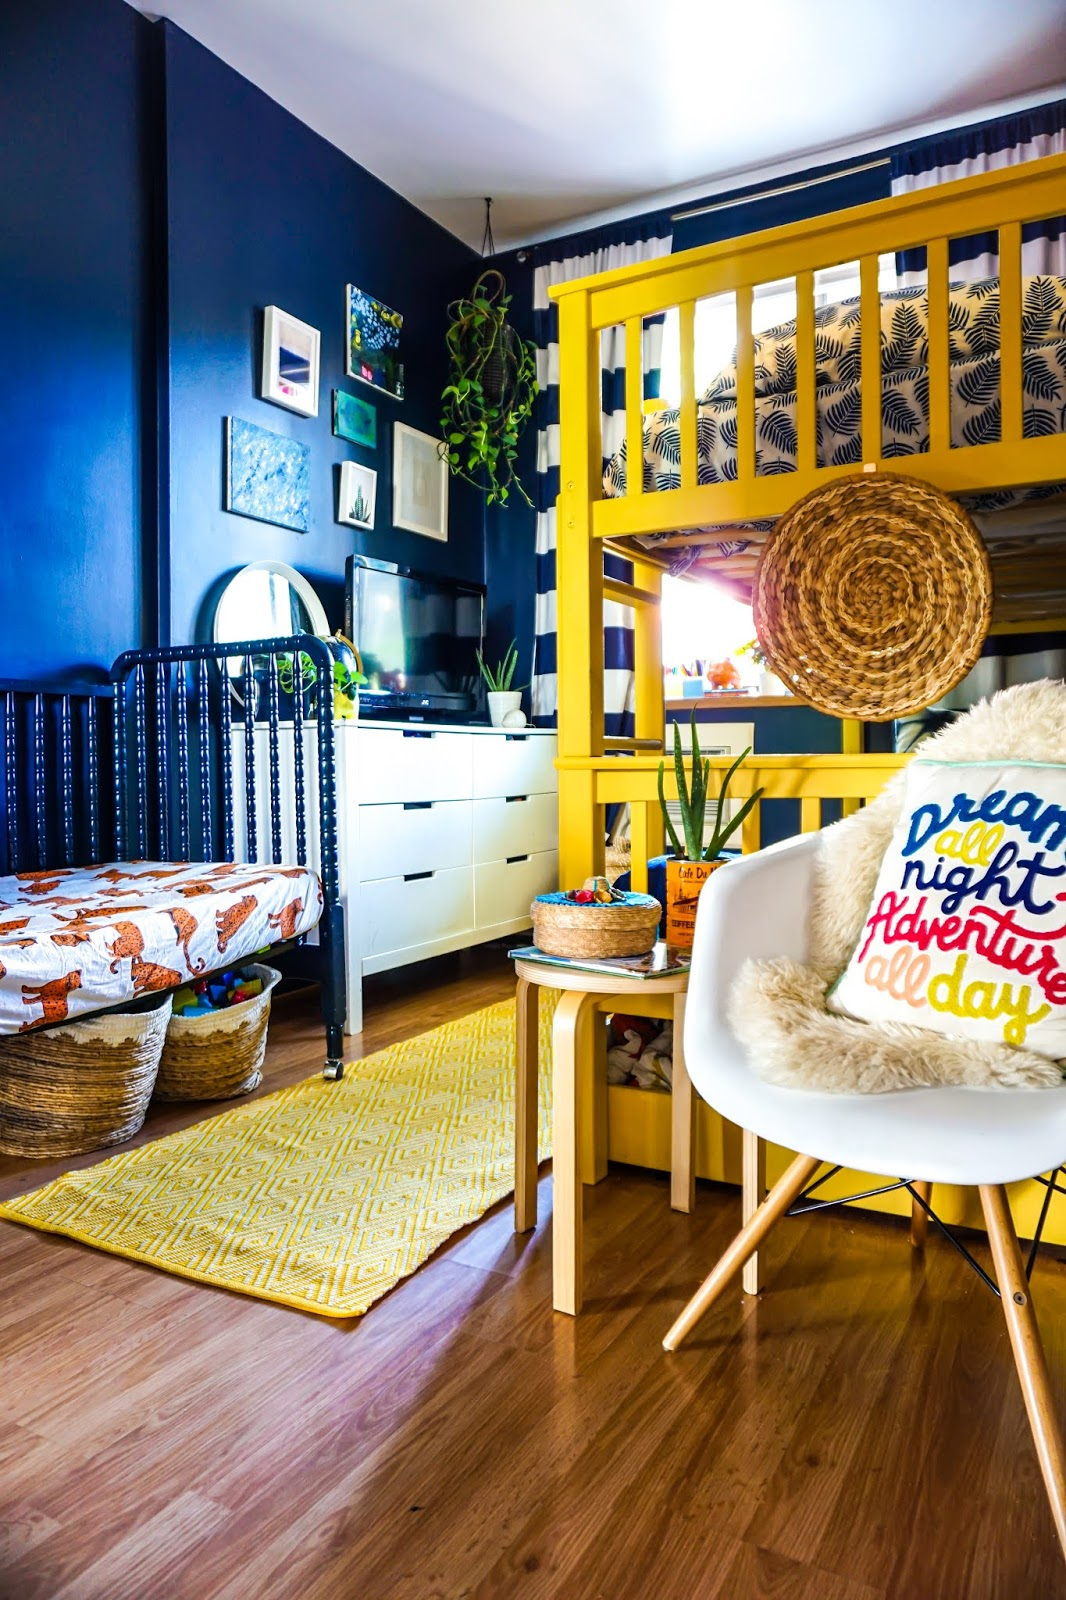 colorful kids bedroom ideas // colorful kids room // colorful boys room // colorful bohemian kids bedroom // Clare paint golden hour // clare paint goodnight moon // best paint for kids bedroom // non-voc paint clare // boho kids room // tropical inspired kids bedroom // tropical inspired boys room // Hawaii inspired boys room // bohemian kids room decor // colorful kids room inspo // yellow bunk bed // navy walls kids bedroom // boho kids decor